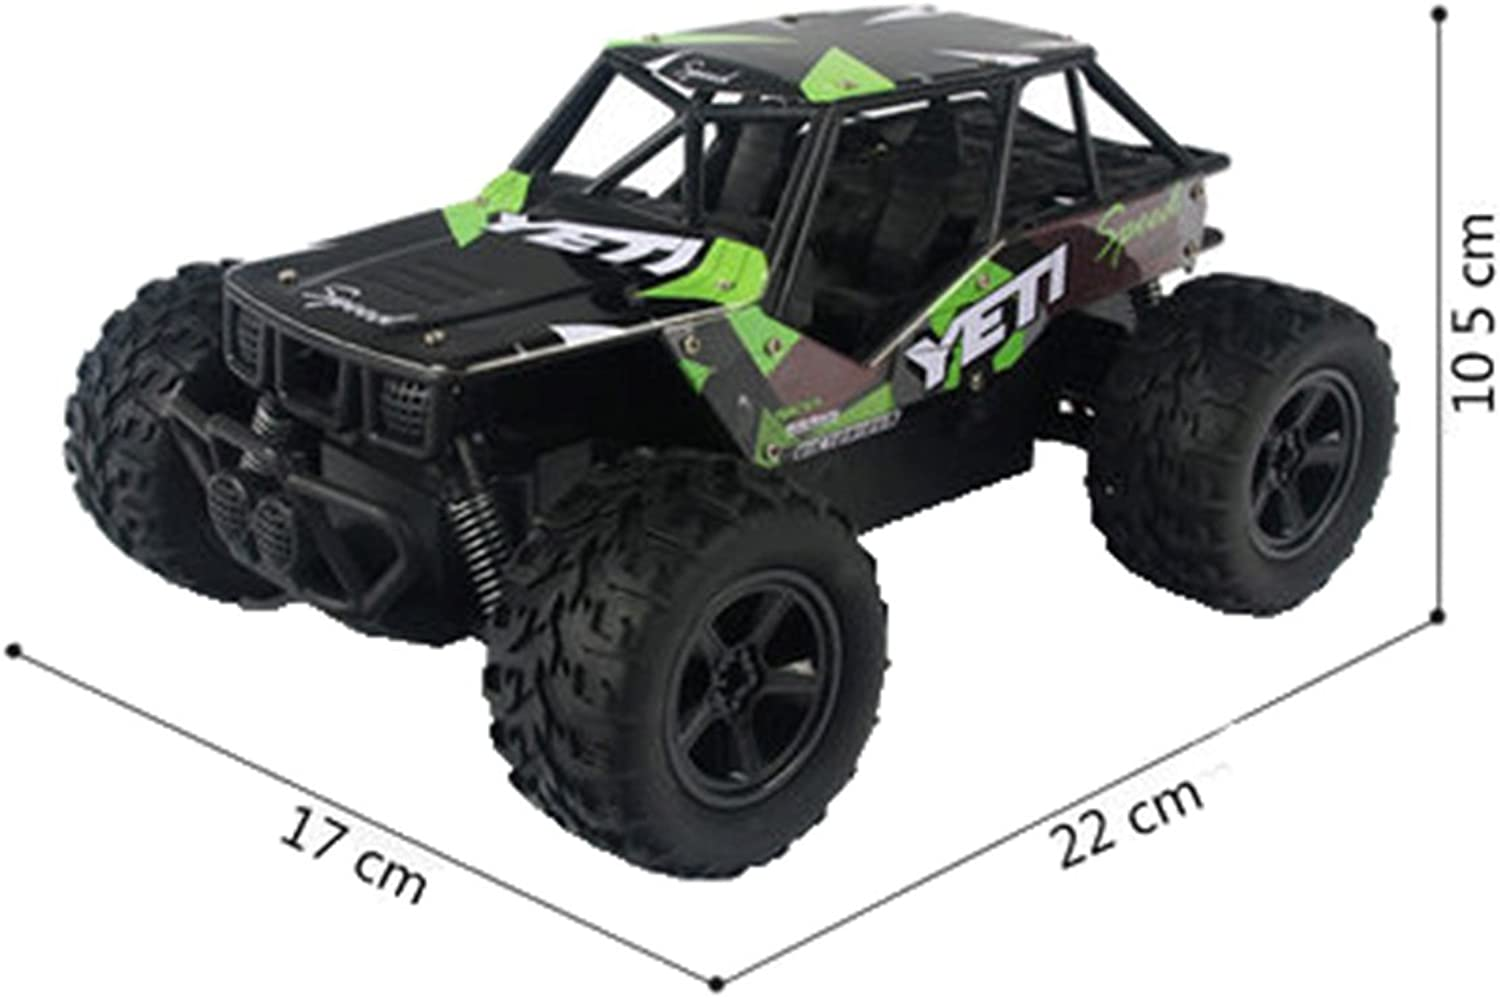 Electric RC Car Off Road Rock 2.4Ghz 4WD Vehicle Crawler Toy with Remote Control Green 21x15.5x10cm 8.27x6.11x3.94